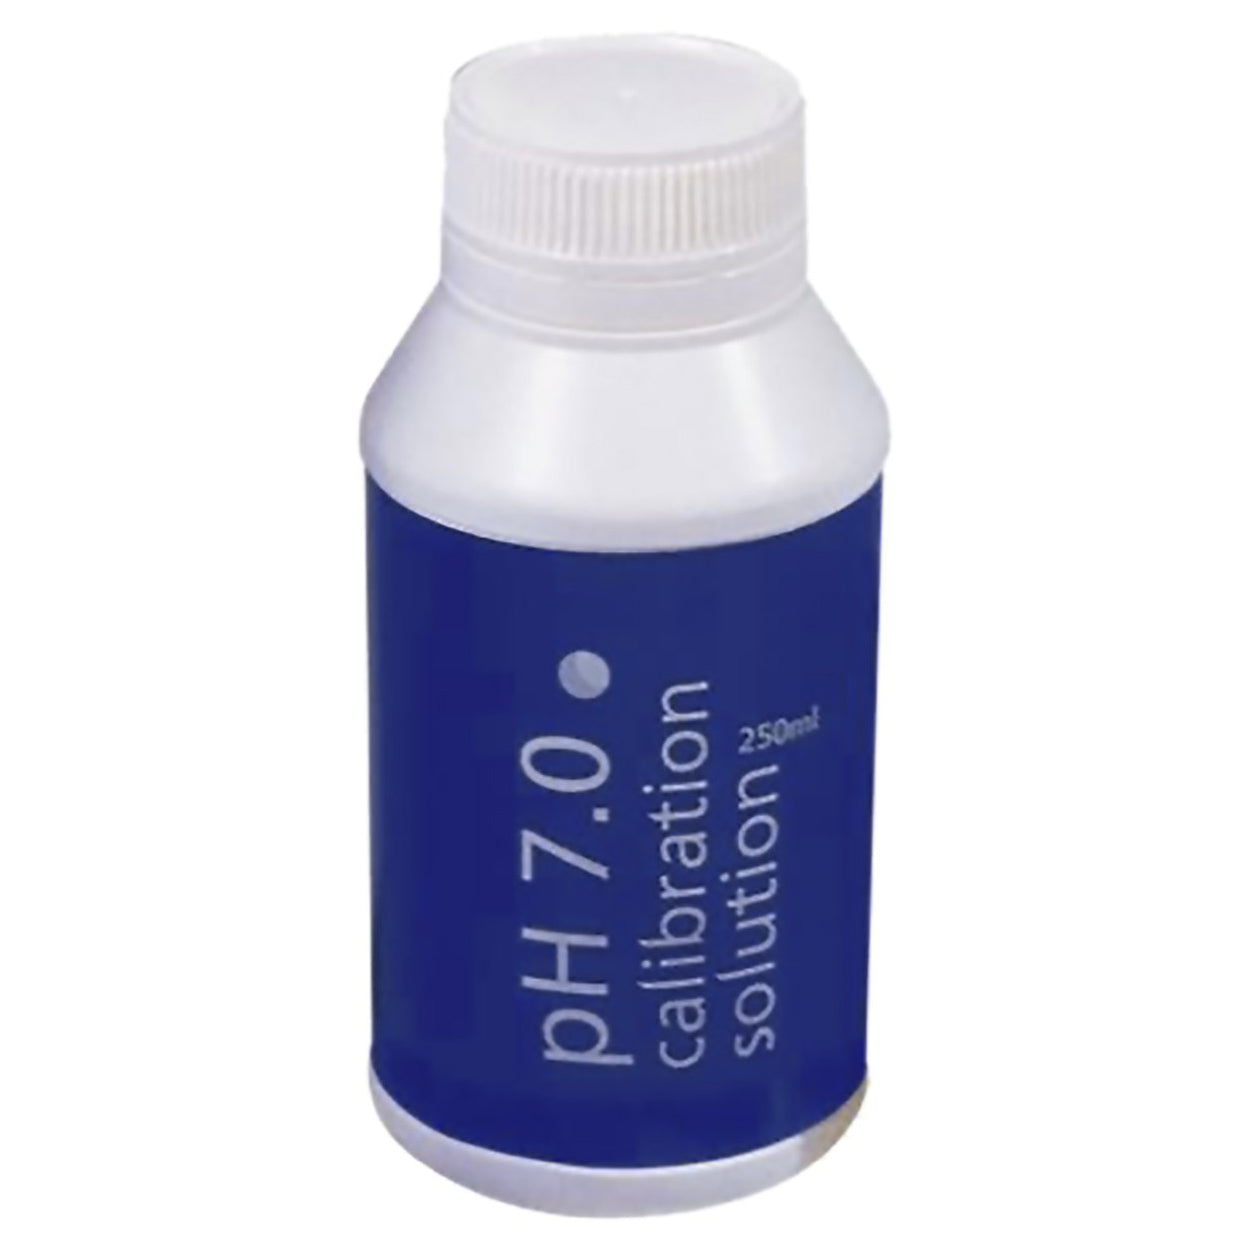 Bluelab Ph 7.0 Calibration Solution 250ml (Case of 6)